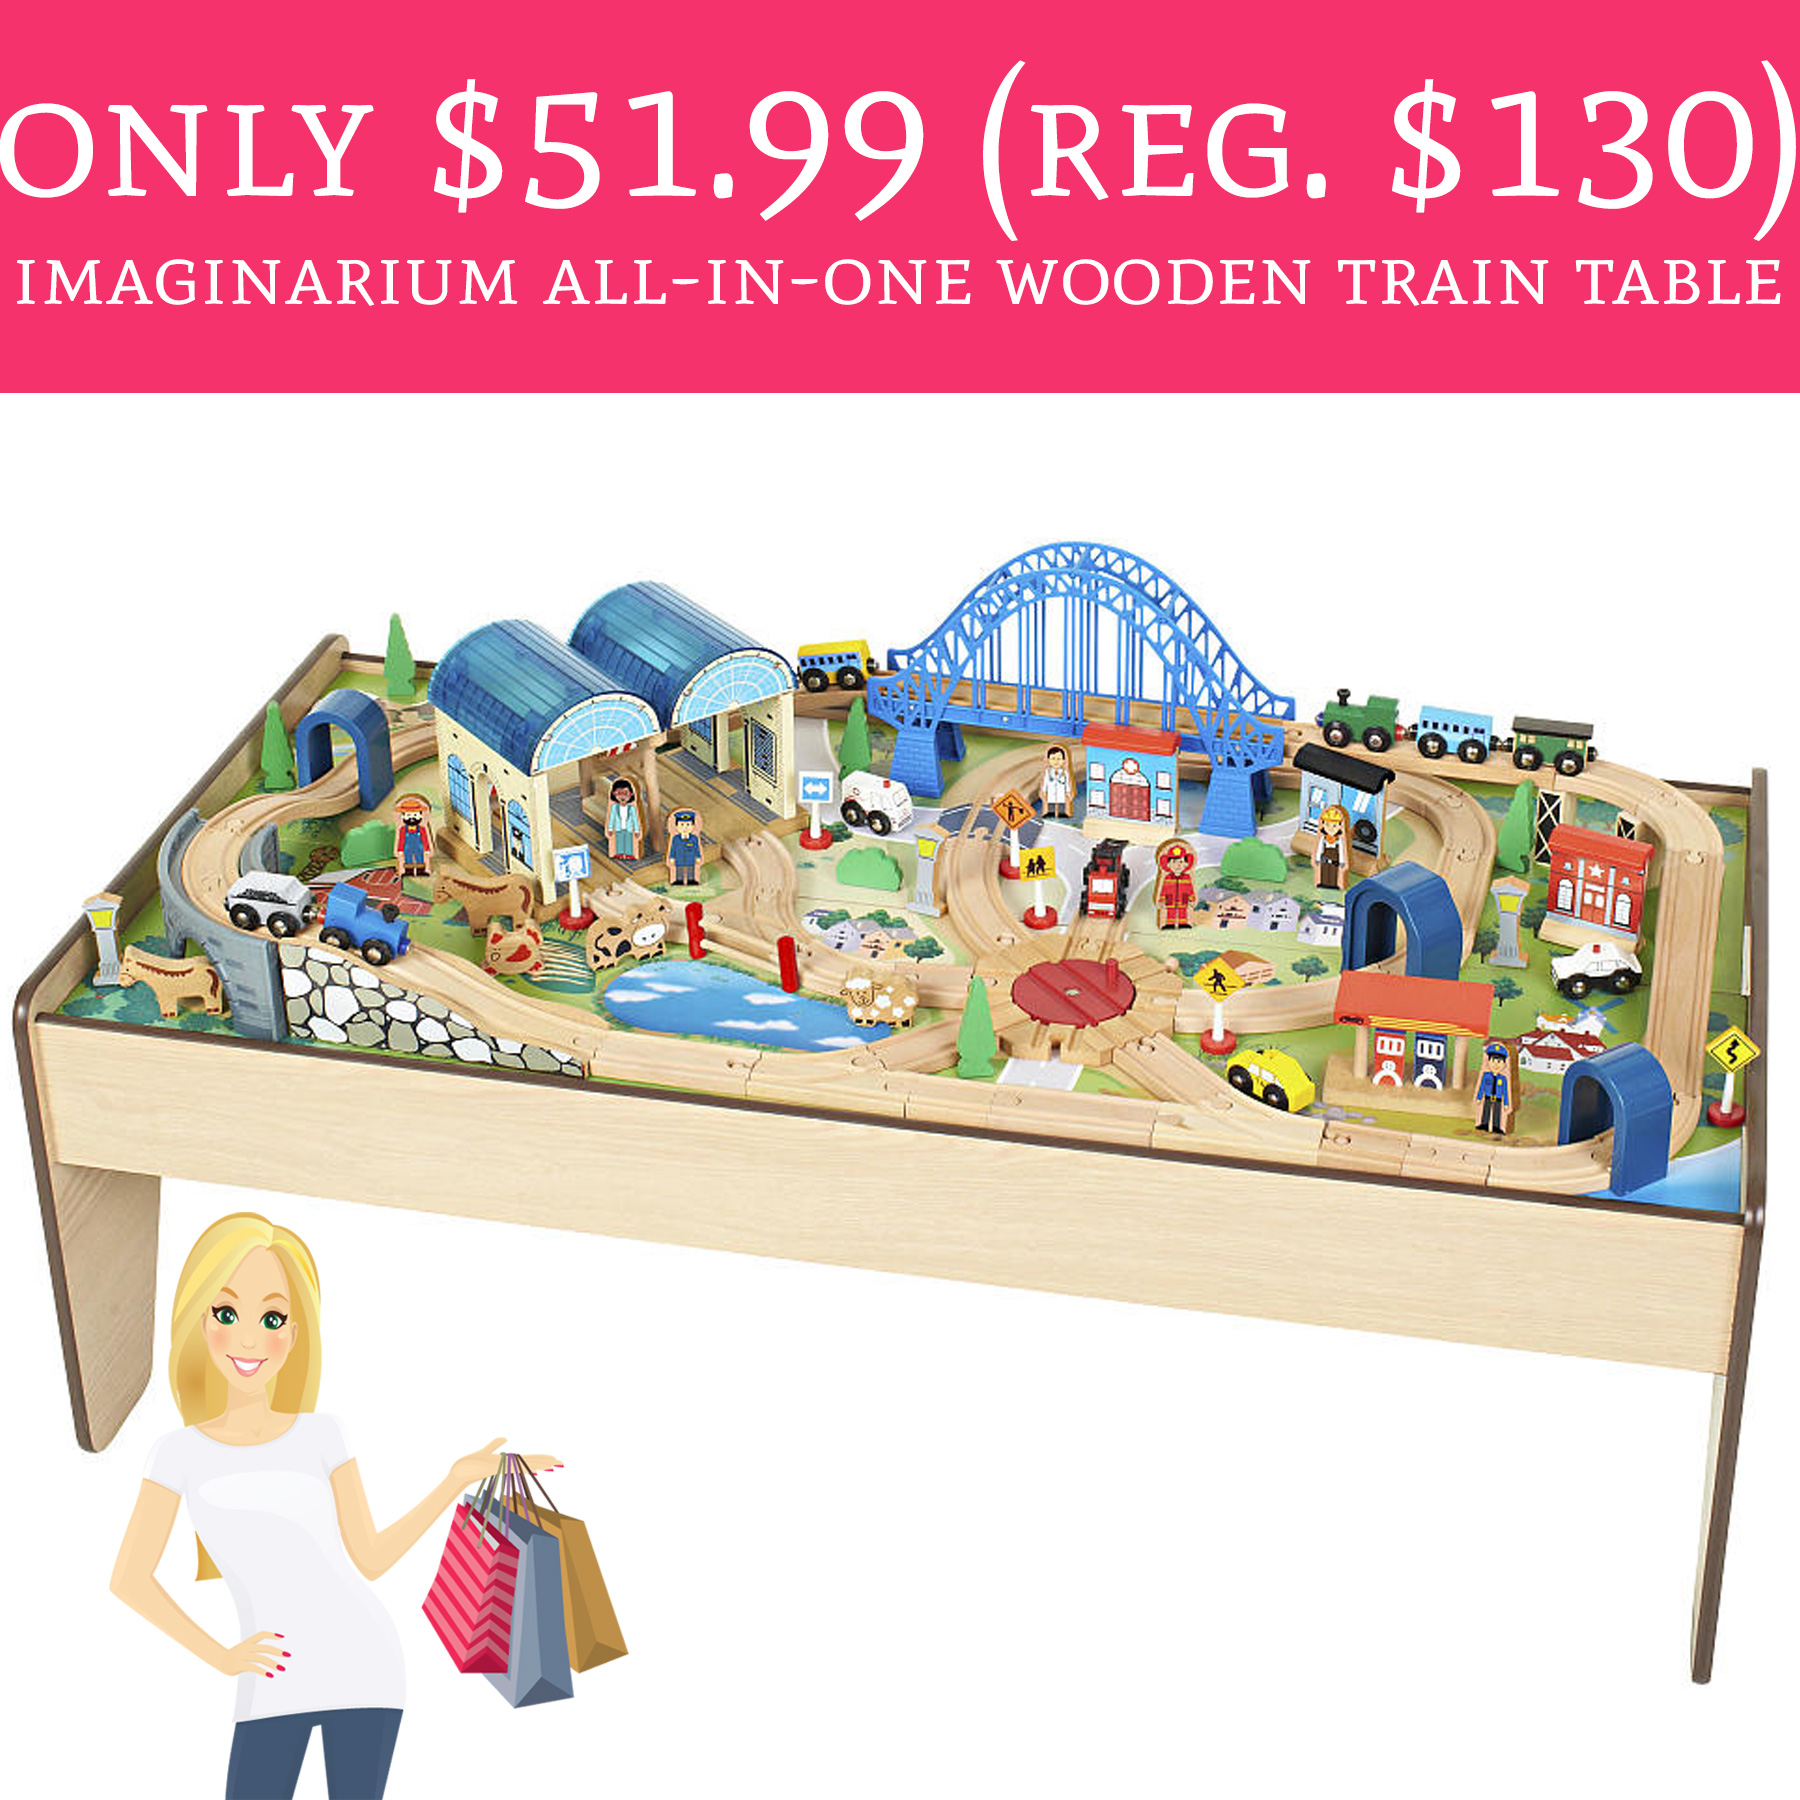 Only 51 99 Regular 130 Imaginarium All In One Wooden